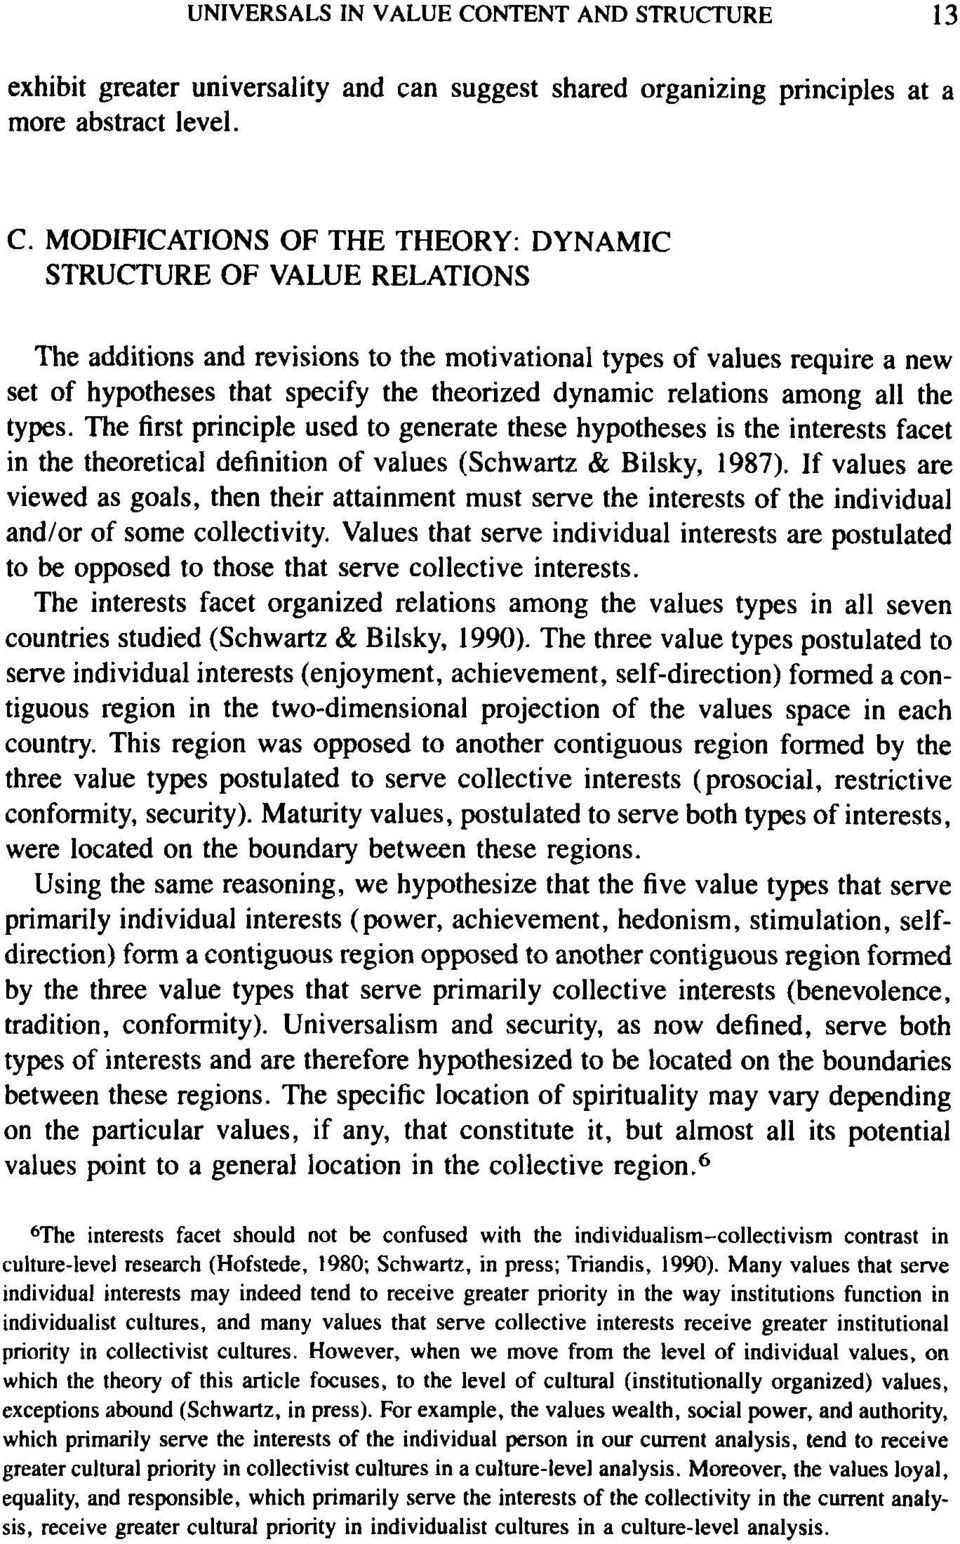 MODIFICATIONS OF THE THEORY: DYNAMIC STRUCTURE OF VALUE RELATIONS The additions and revisions to the motivational types of values require a new set of hypotheses that specify the theorized dynamic